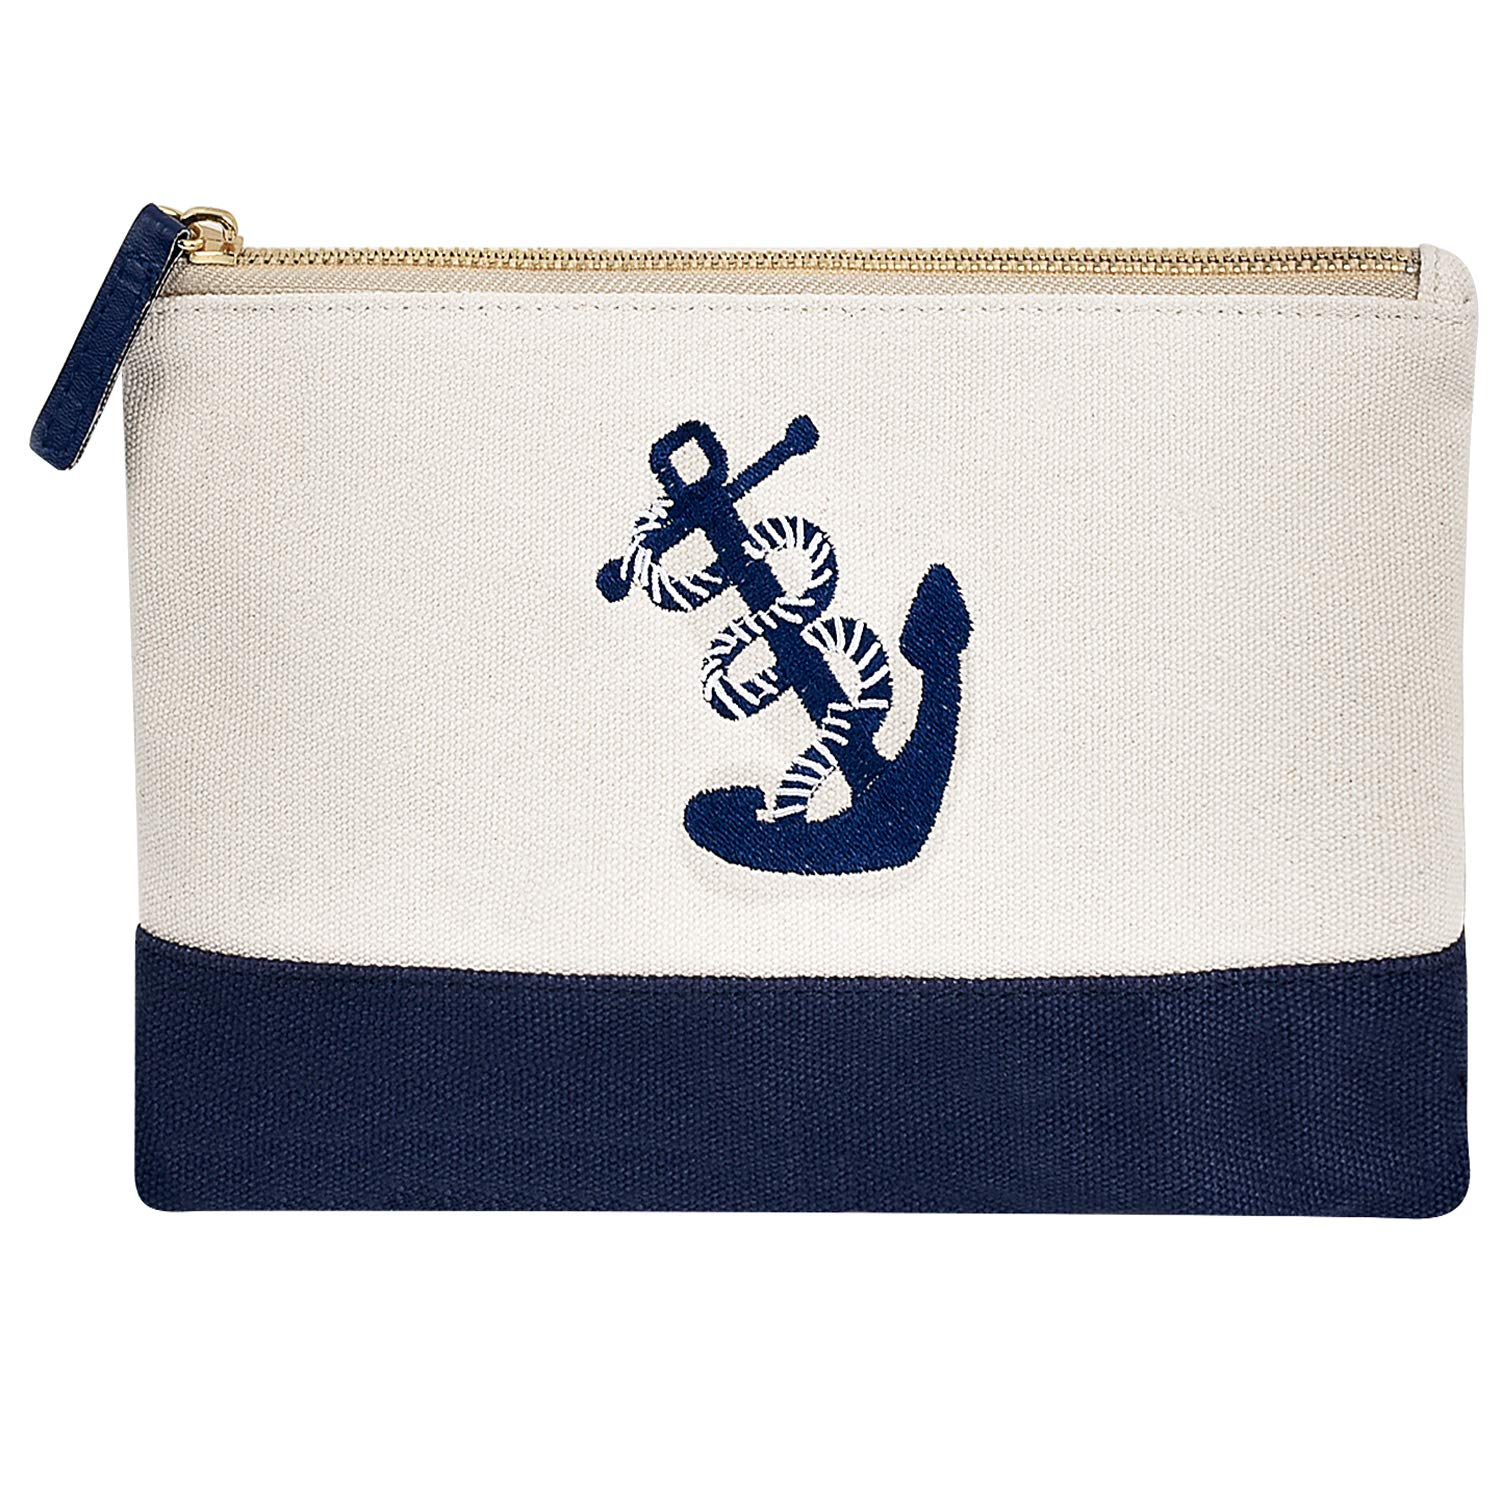 Embroidery Anchor Cosmetic Makeup Bag Canvas Pouch with Zipper Casual Wallet Coin Purse Handle Case Clutch 10.6 9 – L